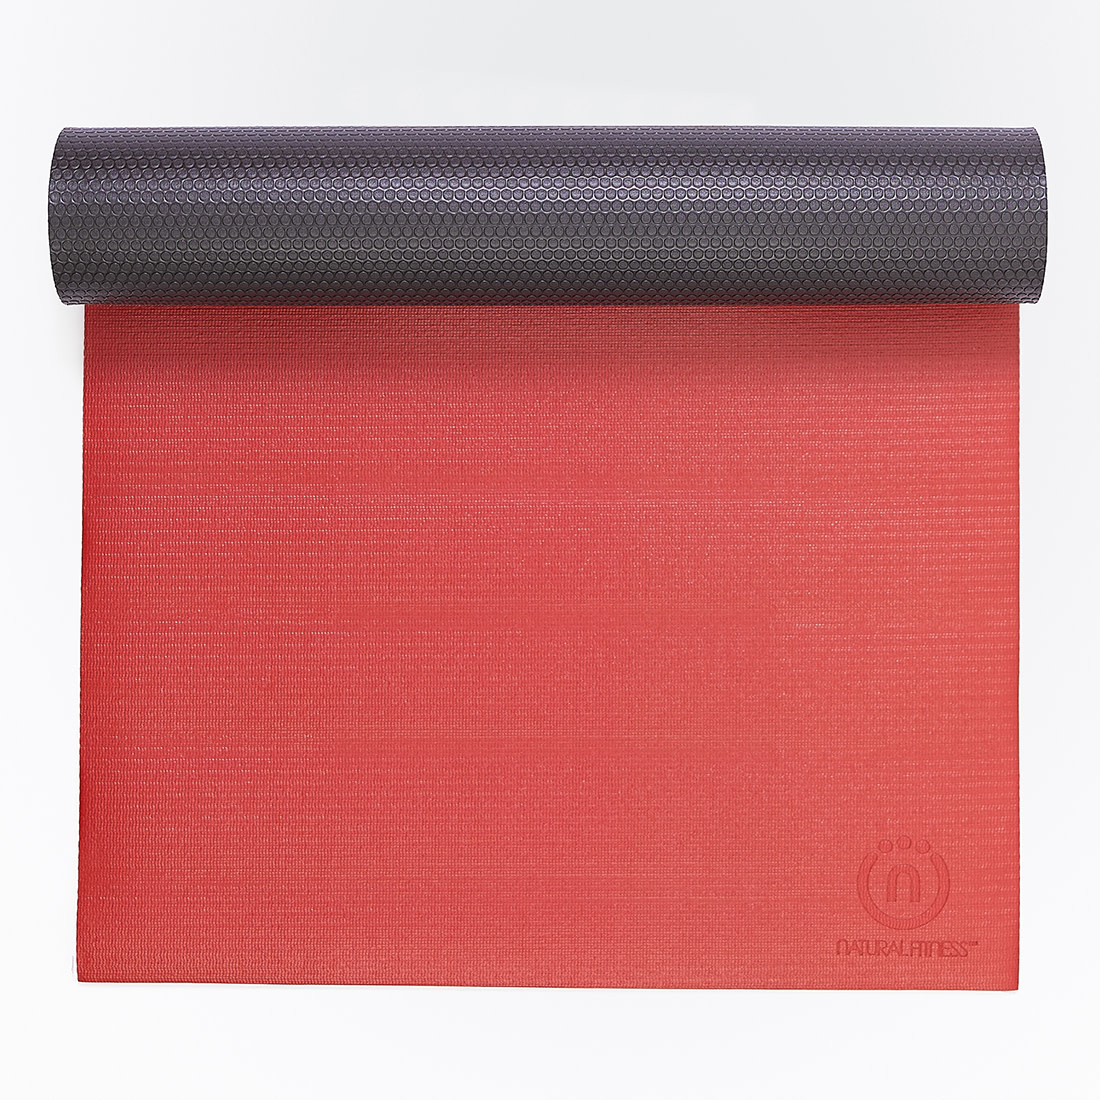 Natural Fitness 5mm Thick Warrior Yoga Mat Designed for Comfortable Support and Studio Use